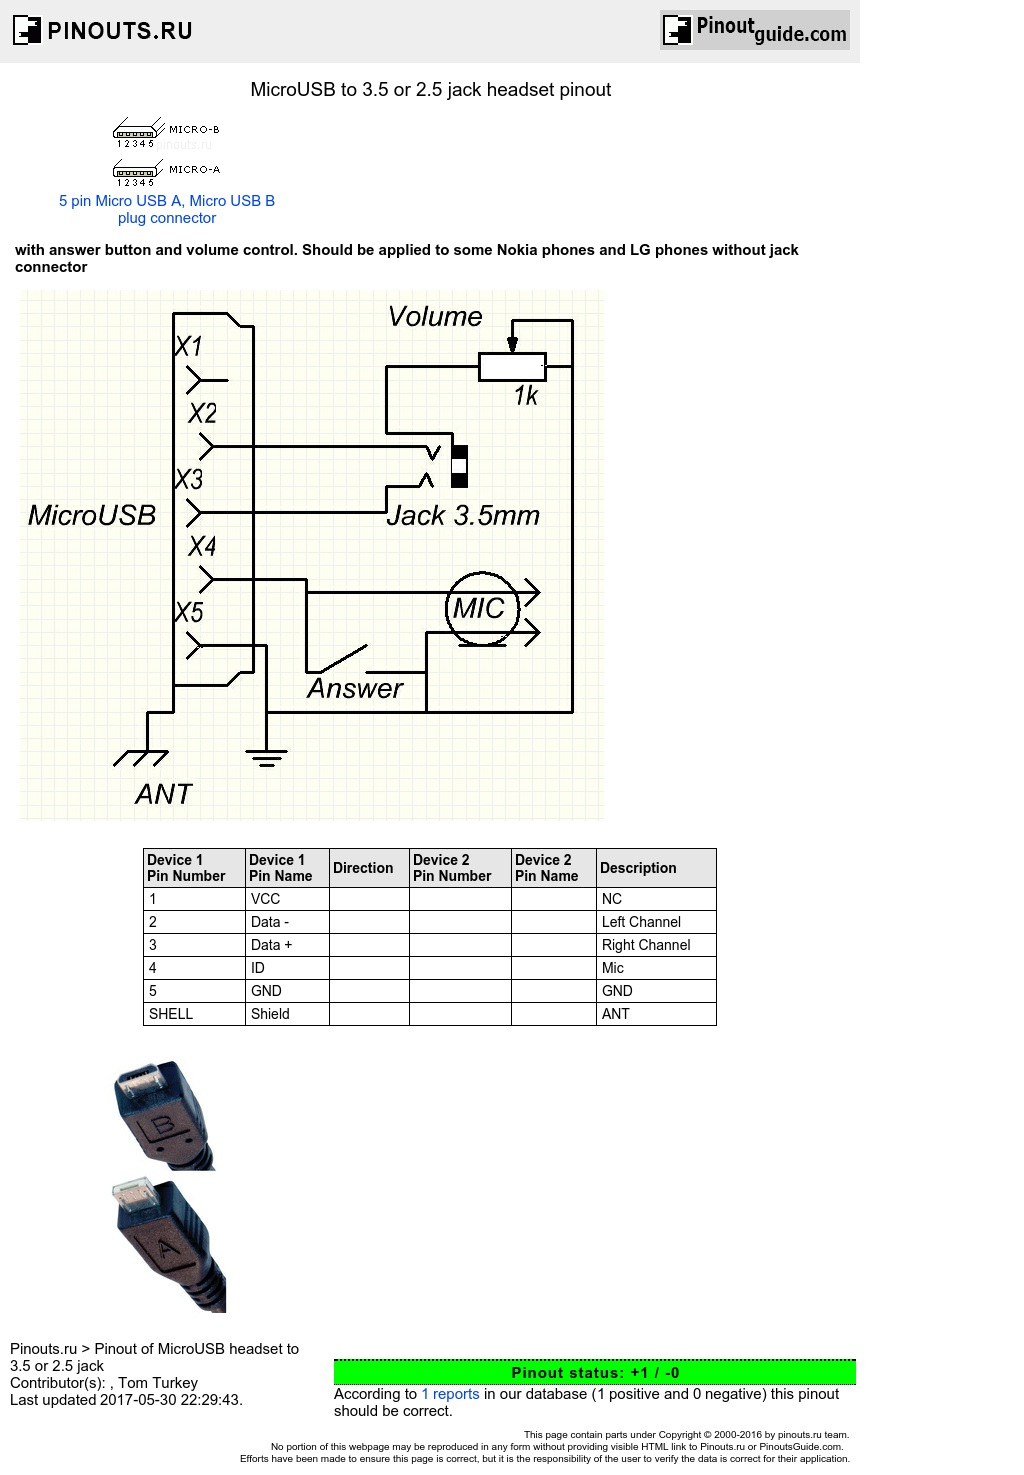 Microusb To 3.5 Or 2.5 Jack Headset Pinout Diagram @ Pinoutguide - 3.5 Mm Headphone Jack Wiring Diagram